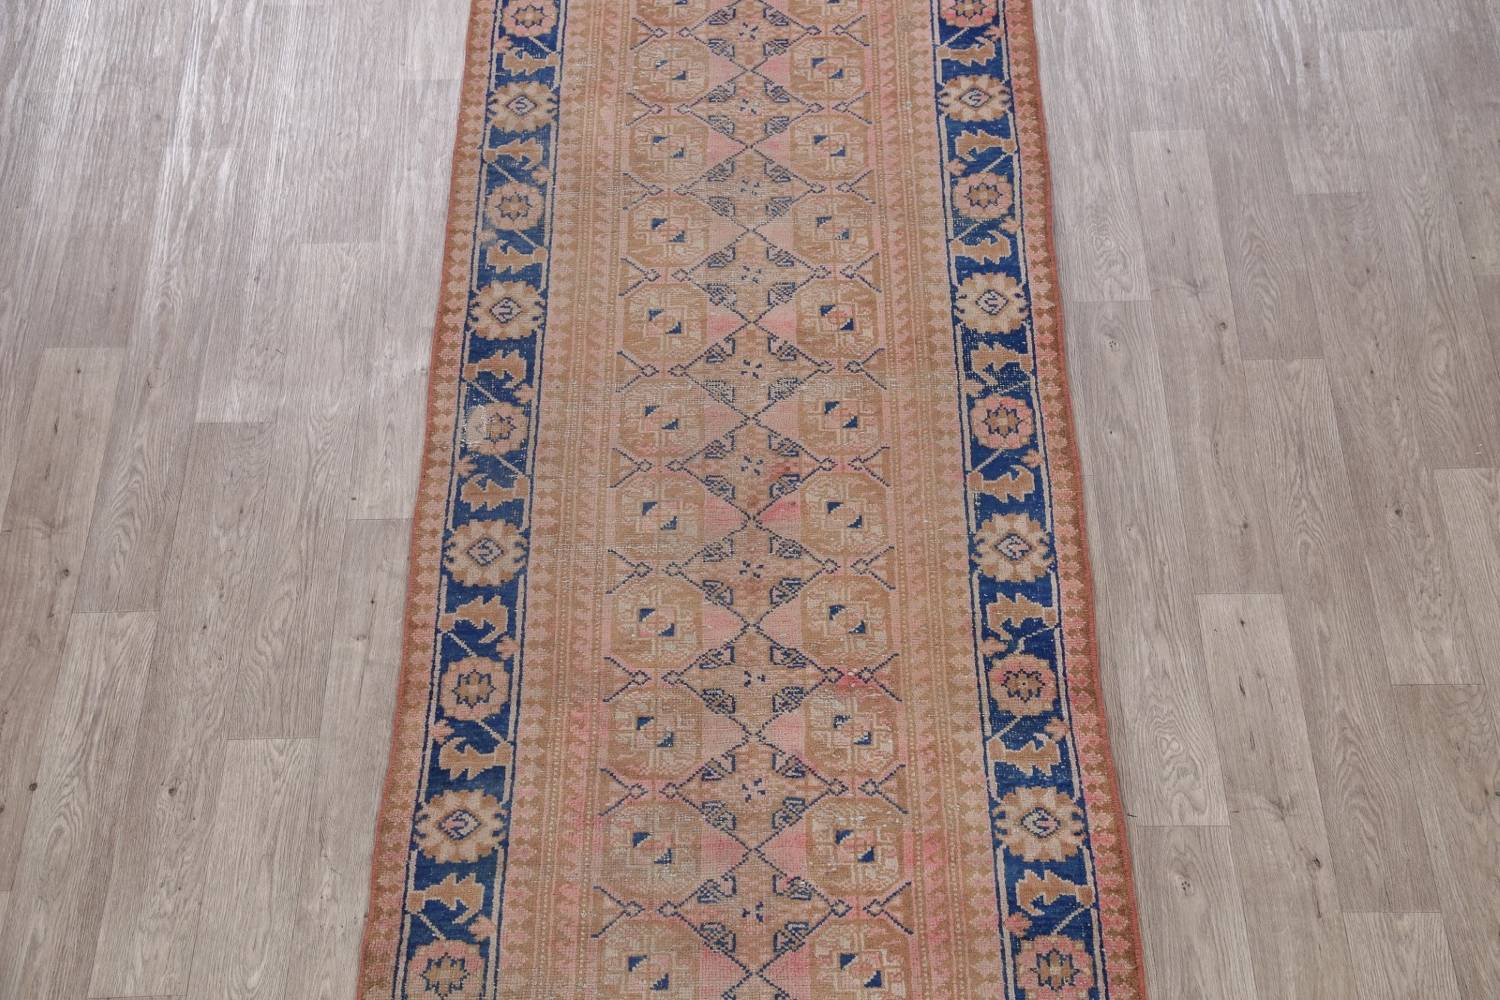 Antique Muted Distressed Malayer Persian Runner Rug 4x11 image 3